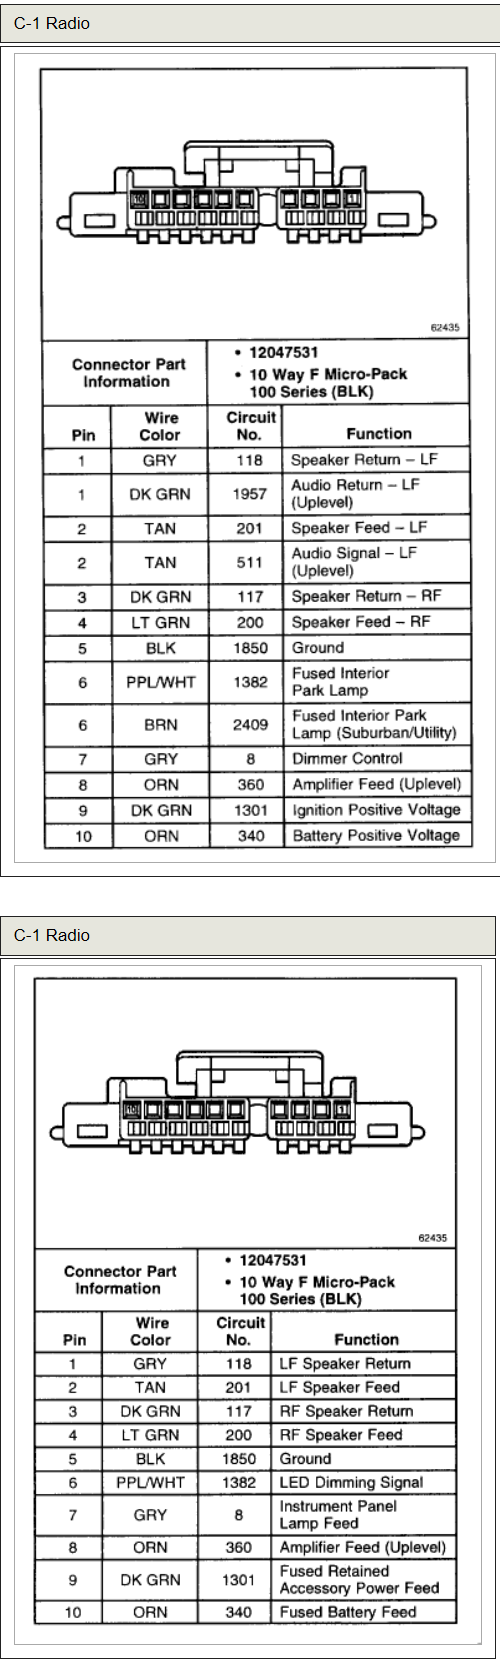 1999 Chevy Suburban Trailer Wiring Diagram from www.tehnomagazin.com